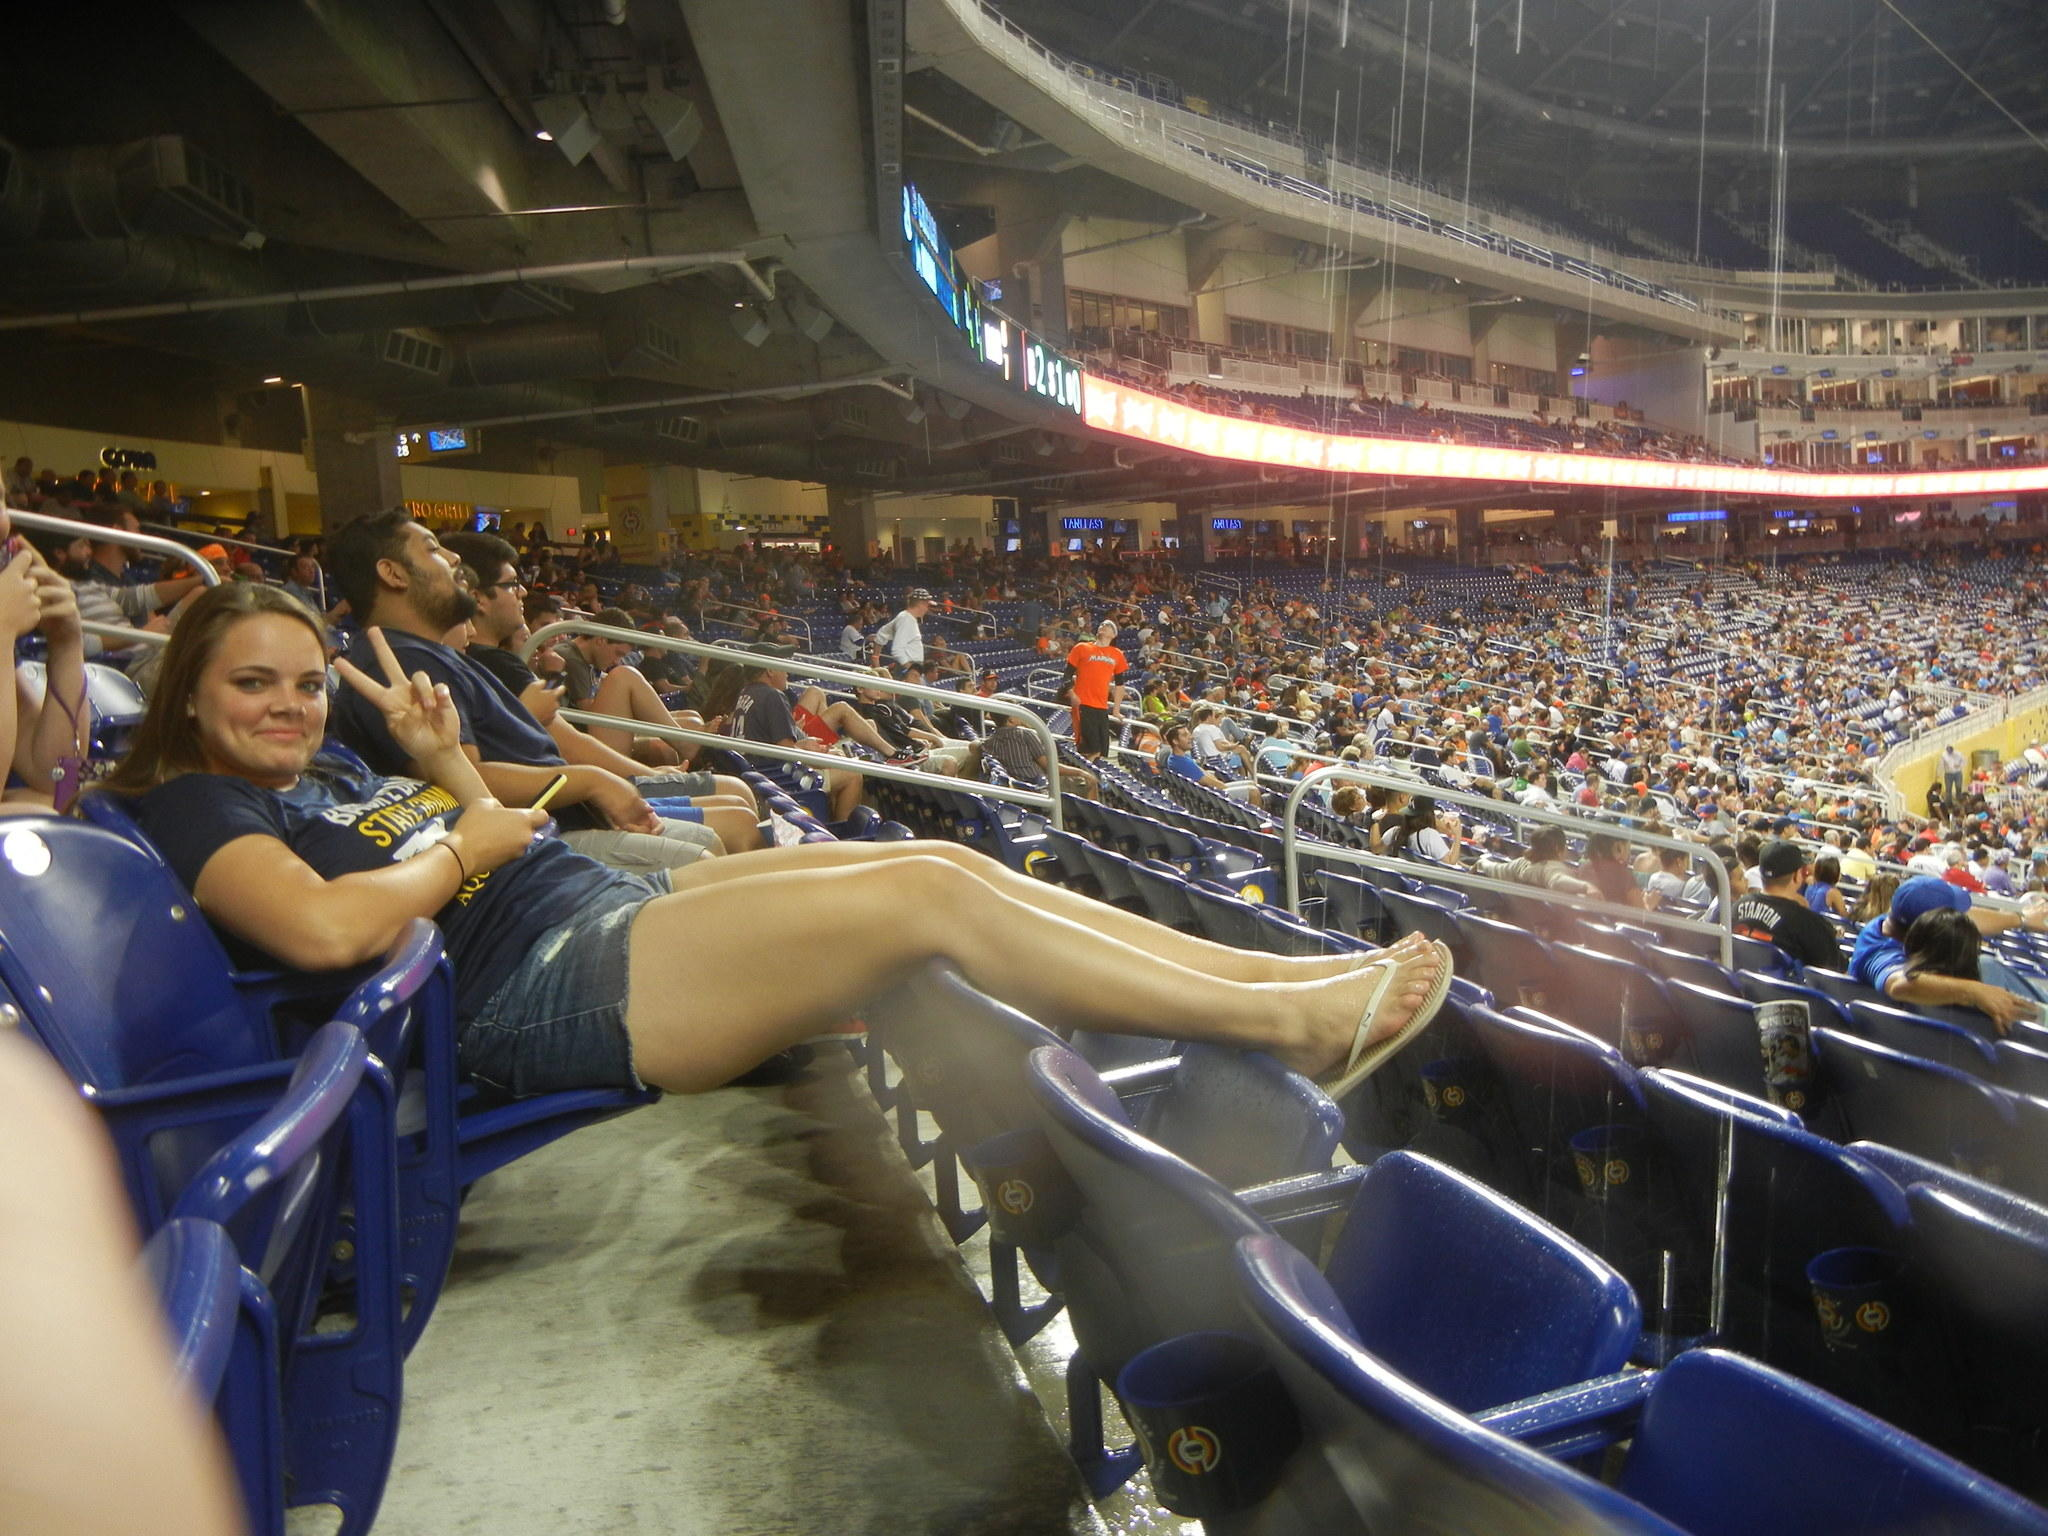 Rain leaks through roof onto fans at marlins park Roof leaks when it rains hard